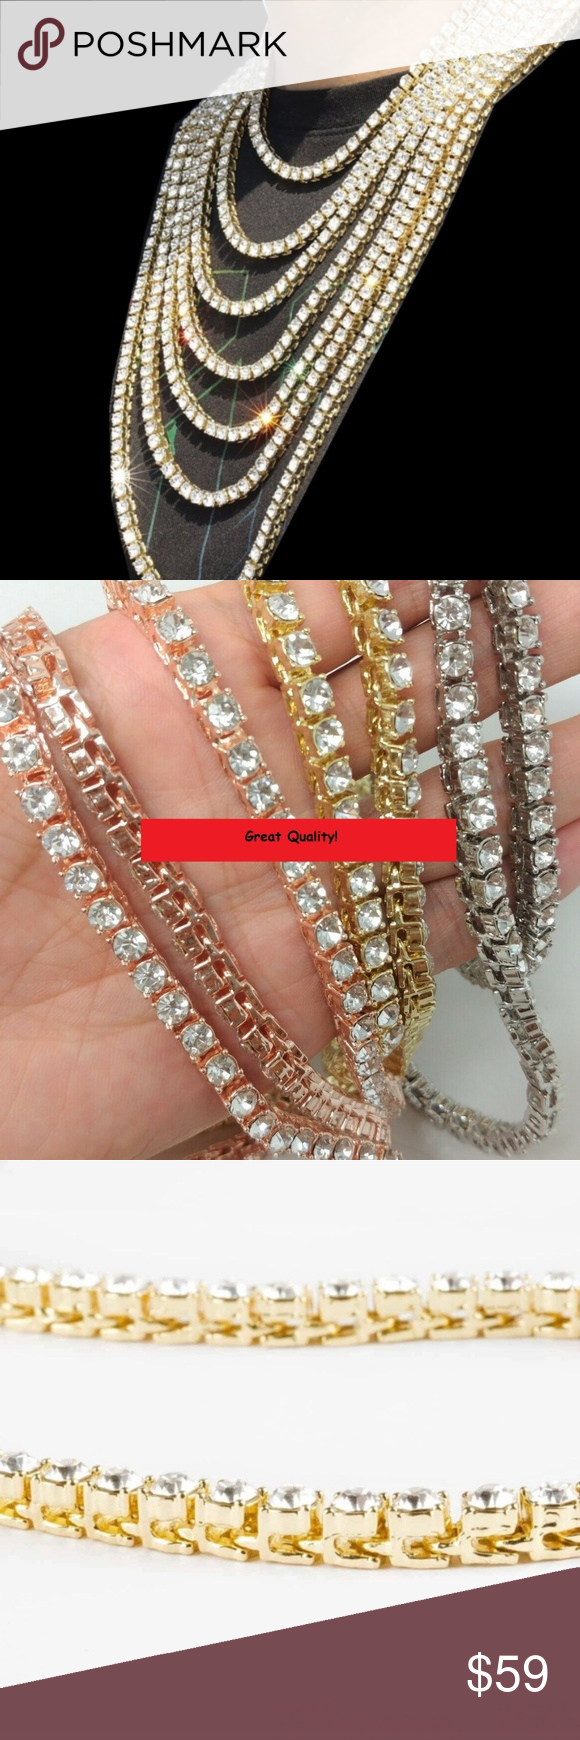 new Gold Plated Simulated Clear CZ Iced Out Tennis Chain HipHop alloy Necklace